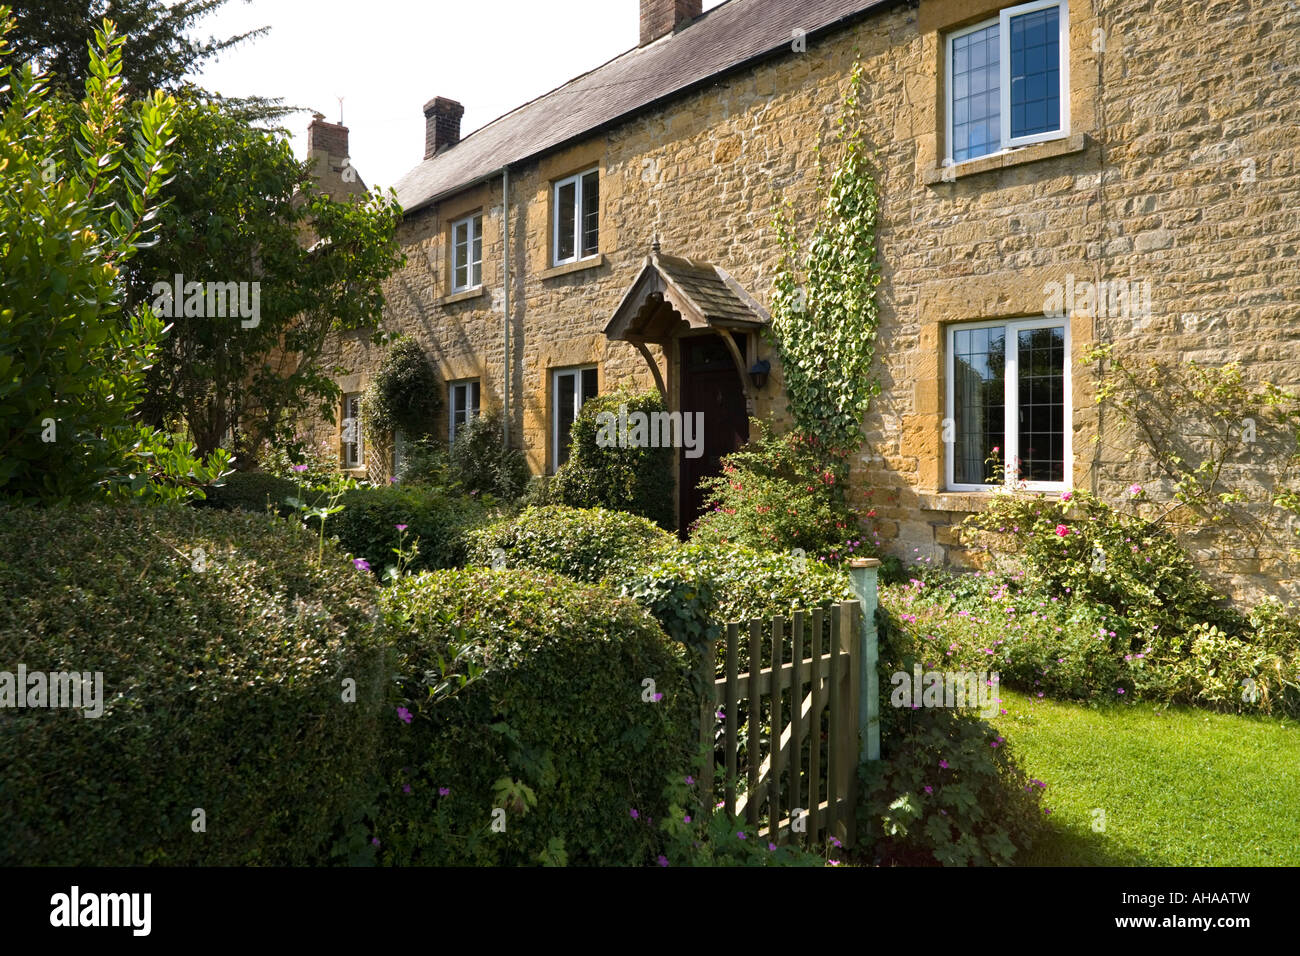 Stone cottages in the Cotswold village of Willersey, Gloucestershire - Stock Image